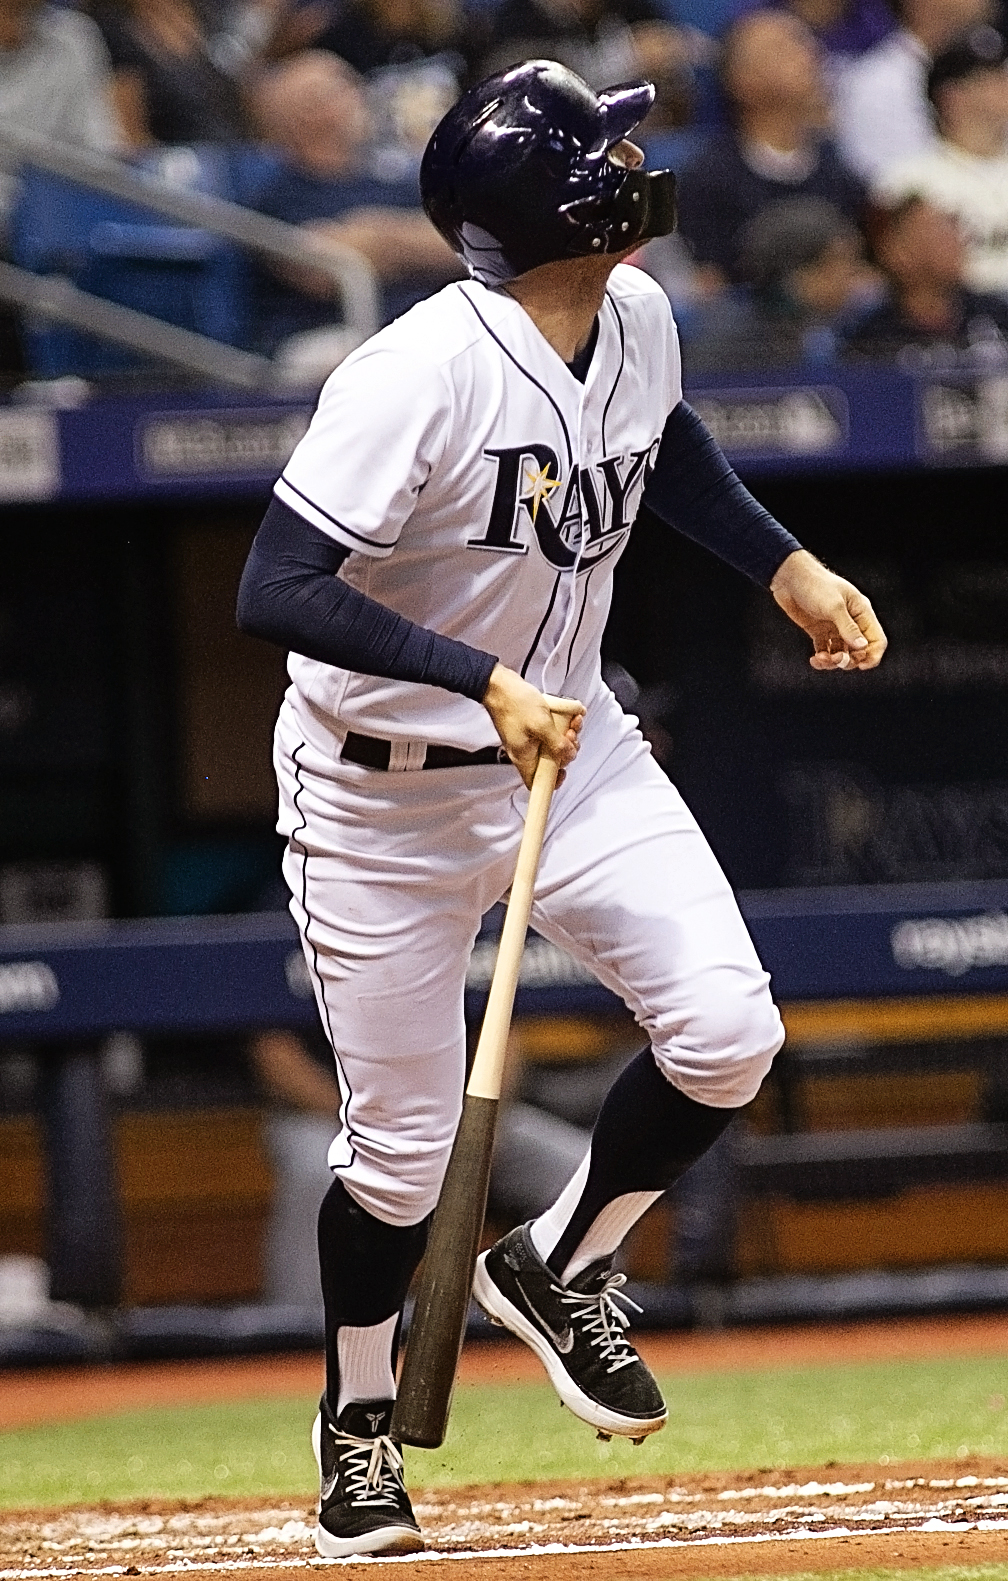 Miller had three hits for the Rays./CARMEN MANDATO